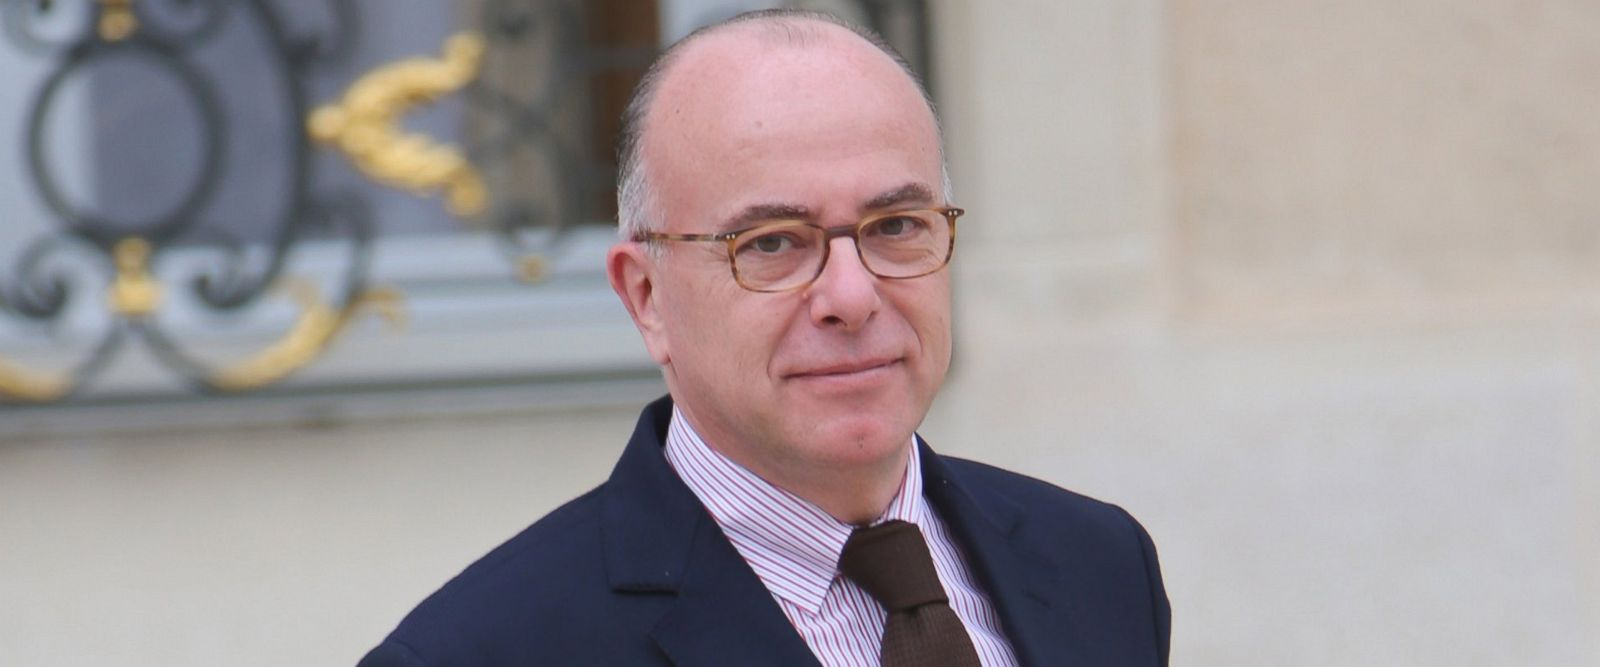 PHOTO: French Minister of the Interior Bernard Cazeneuve leaving the Elysee presidential palace following the weekly cabinet meeting on March 16, 2016.